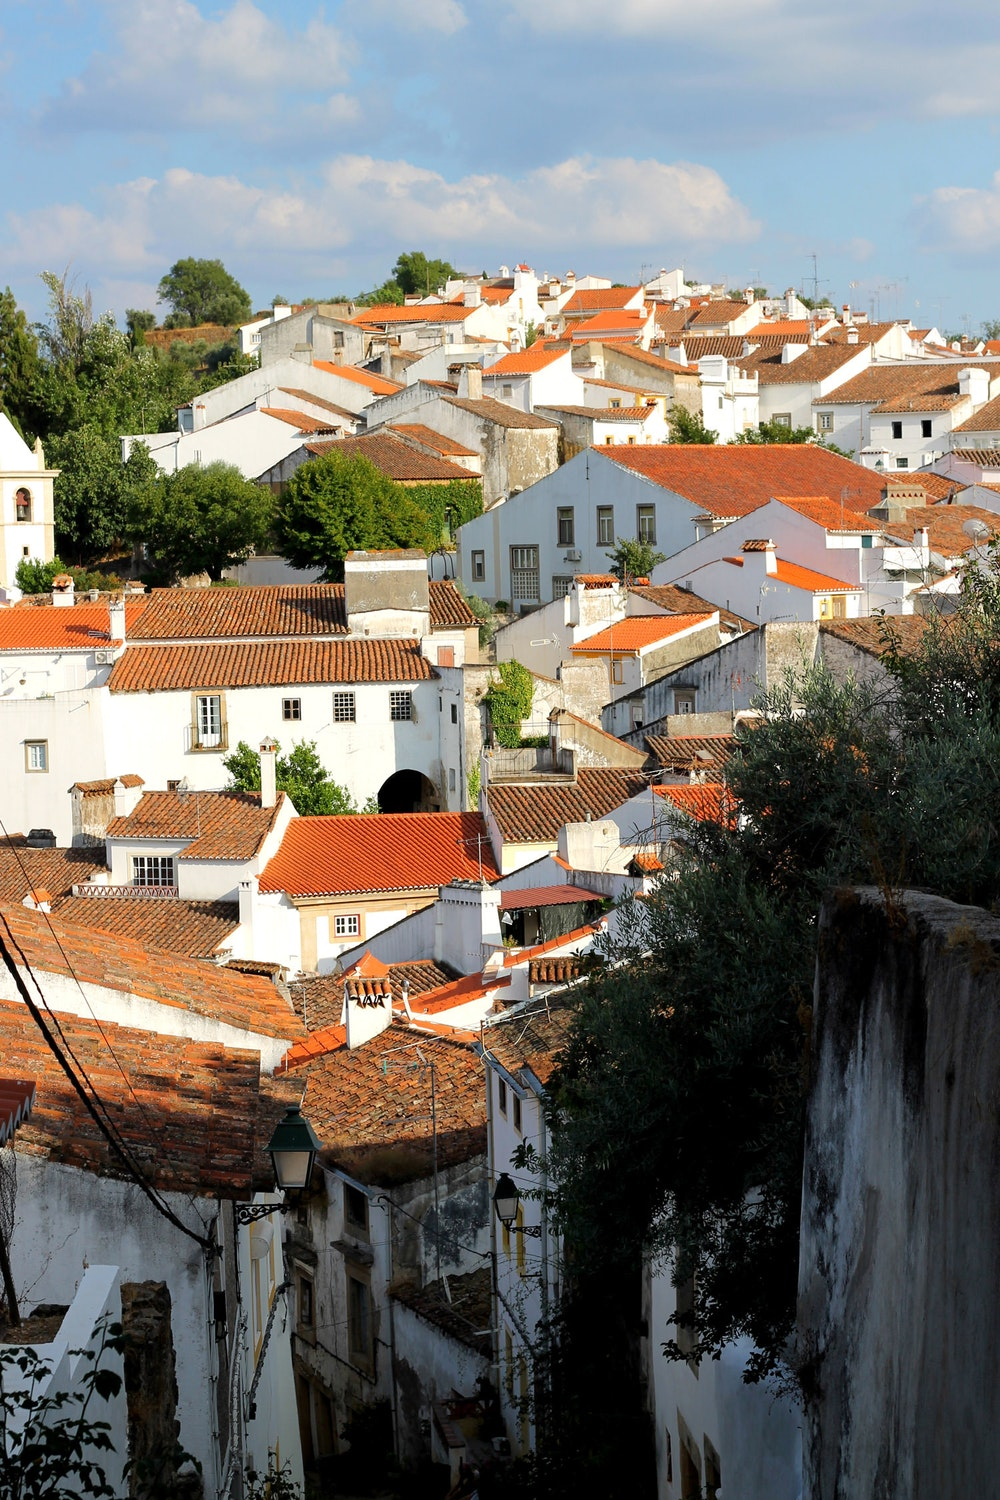 View of white homes with red rooves in the hills of Castelo de Vide